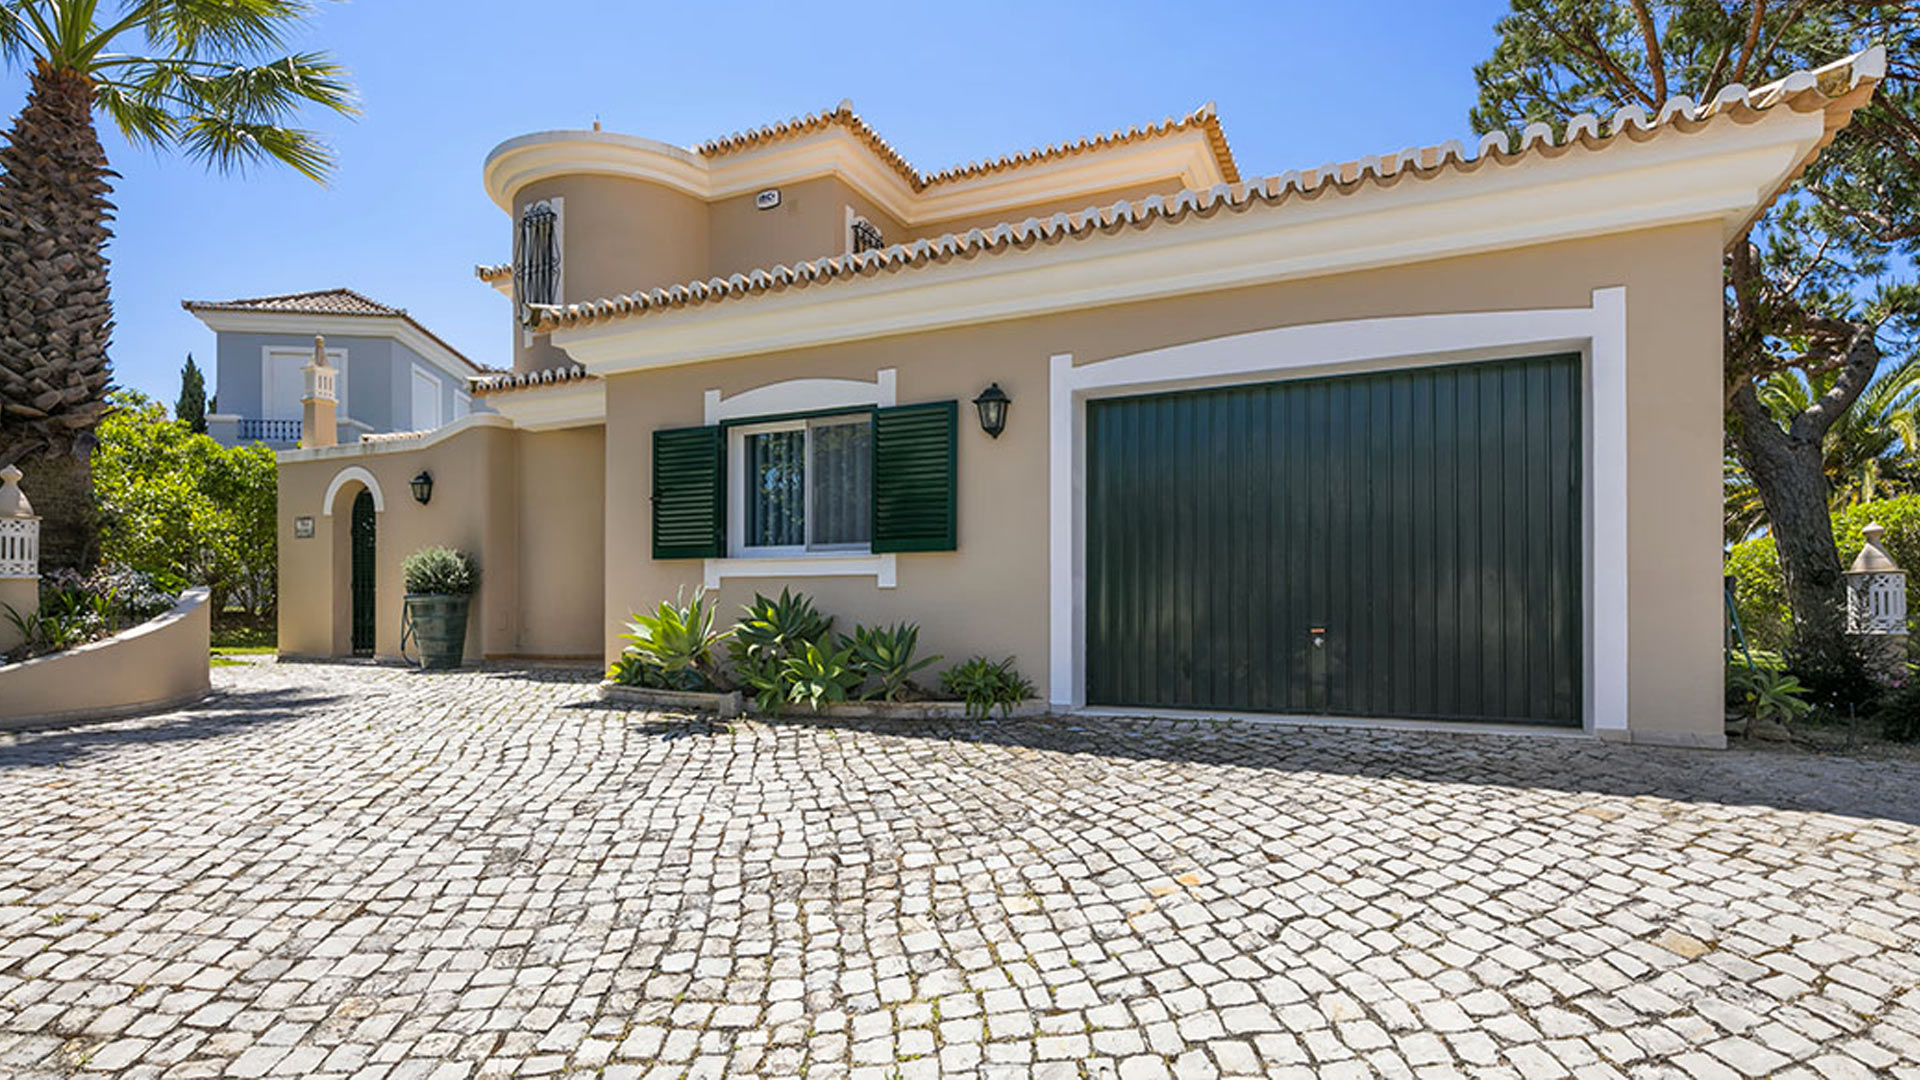 Villa Villa Cristal, Rental in Algarve